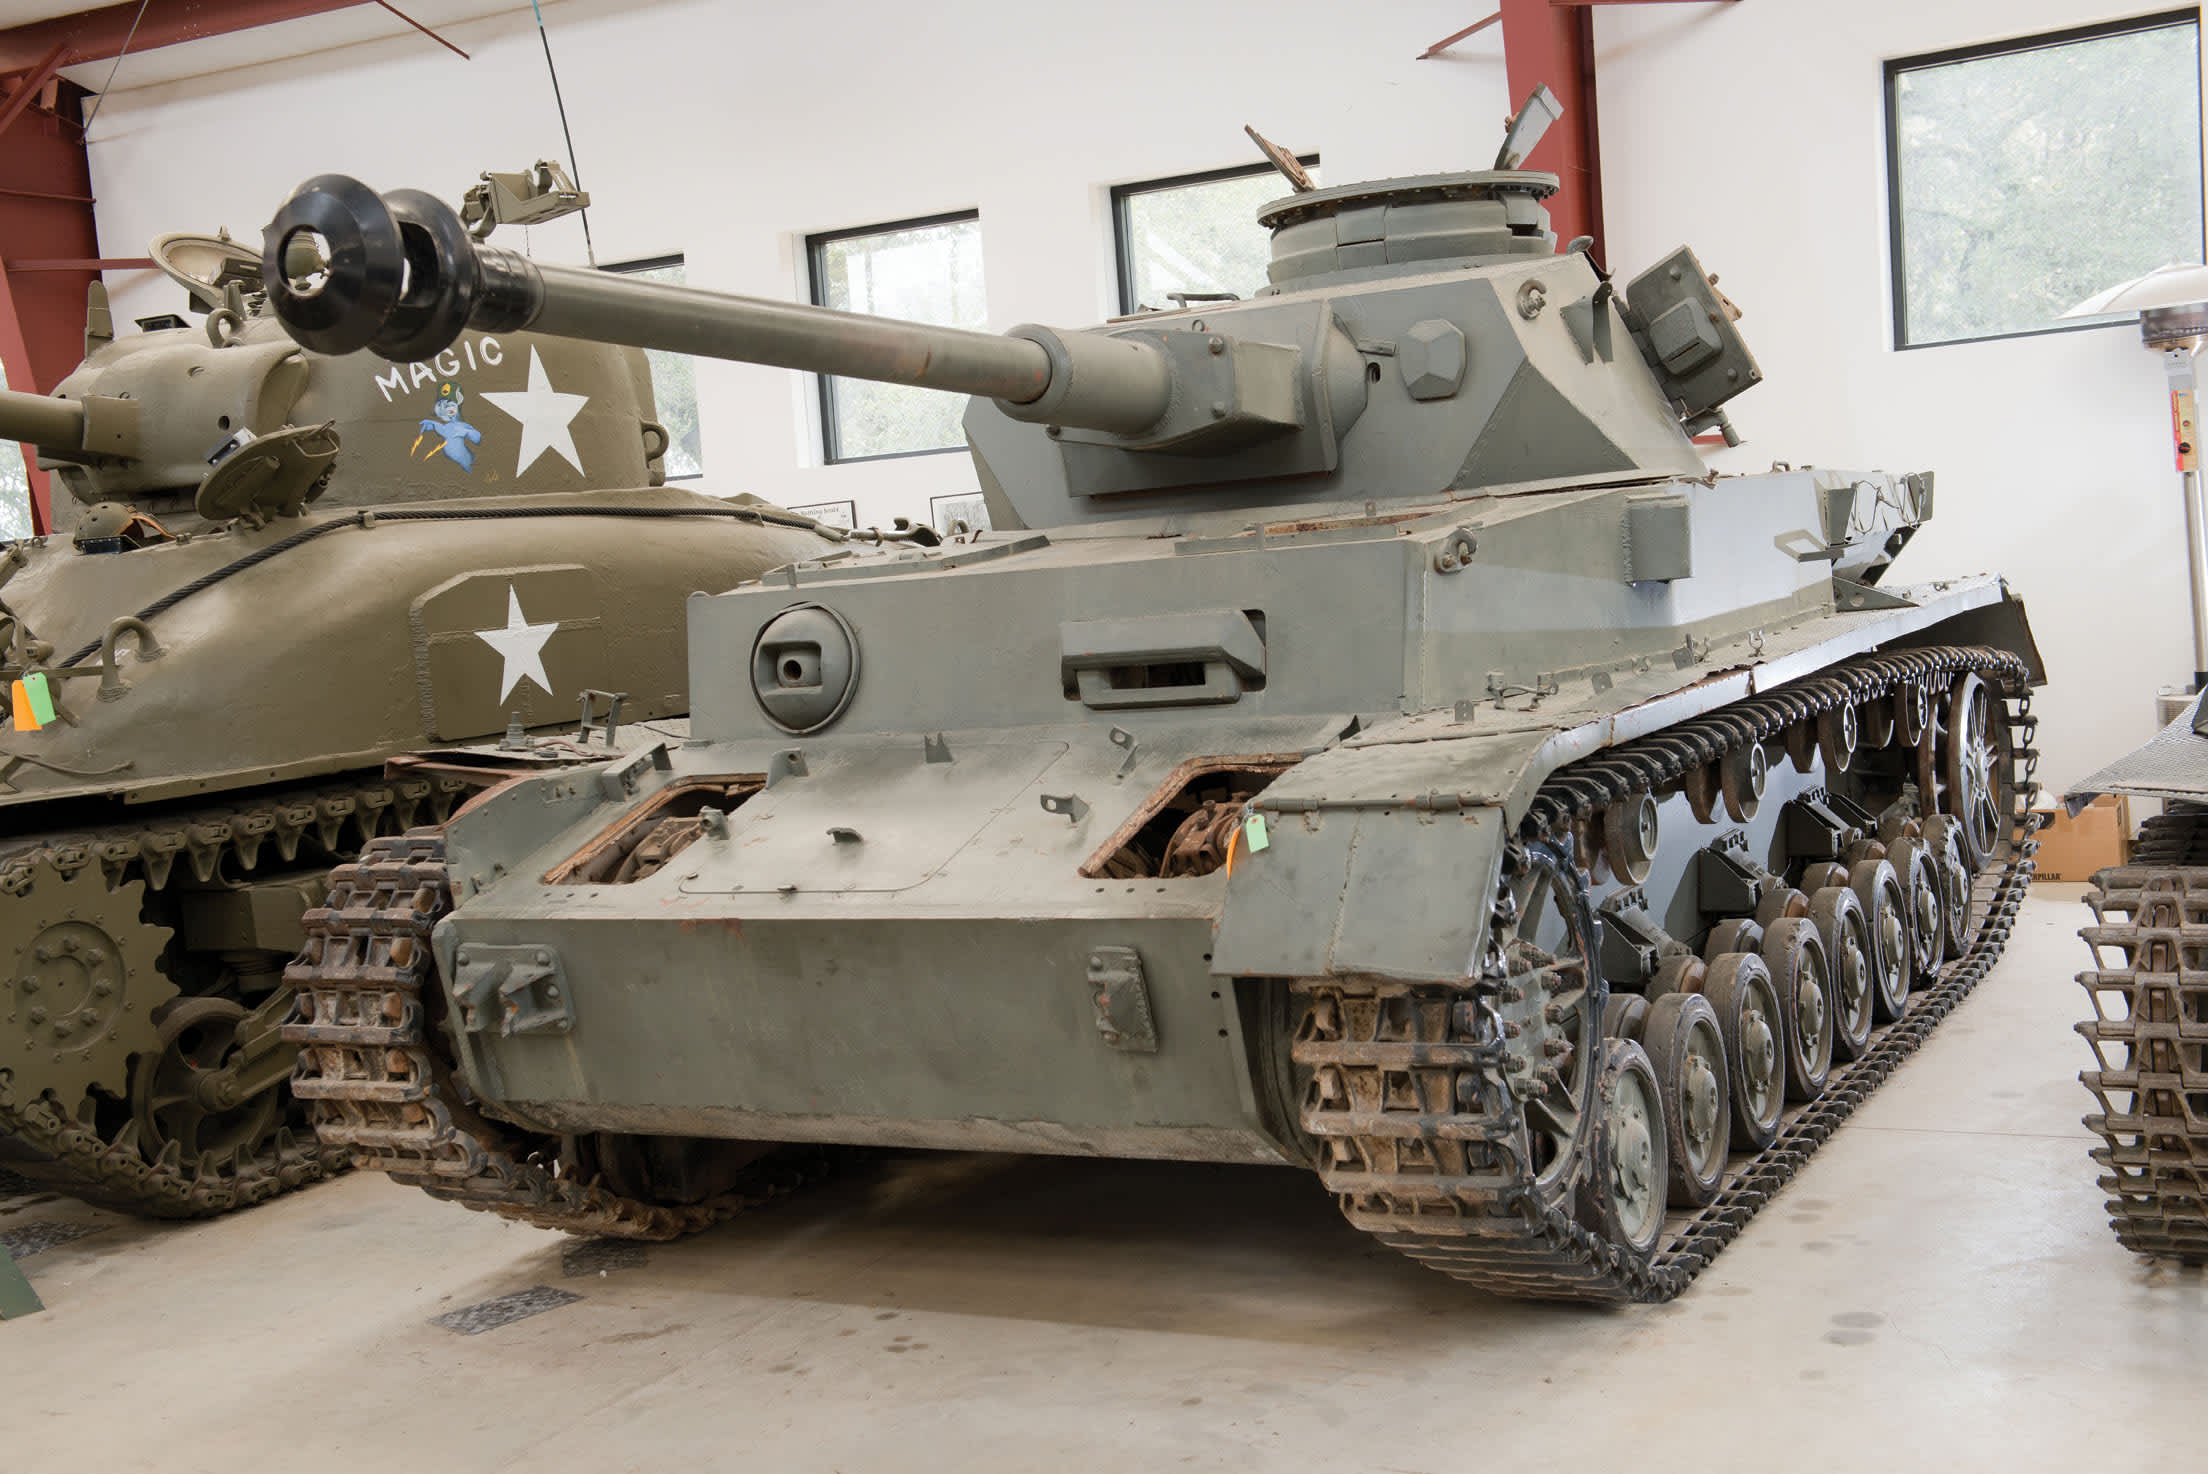 Fleet Of Military Tanks Up For Auction